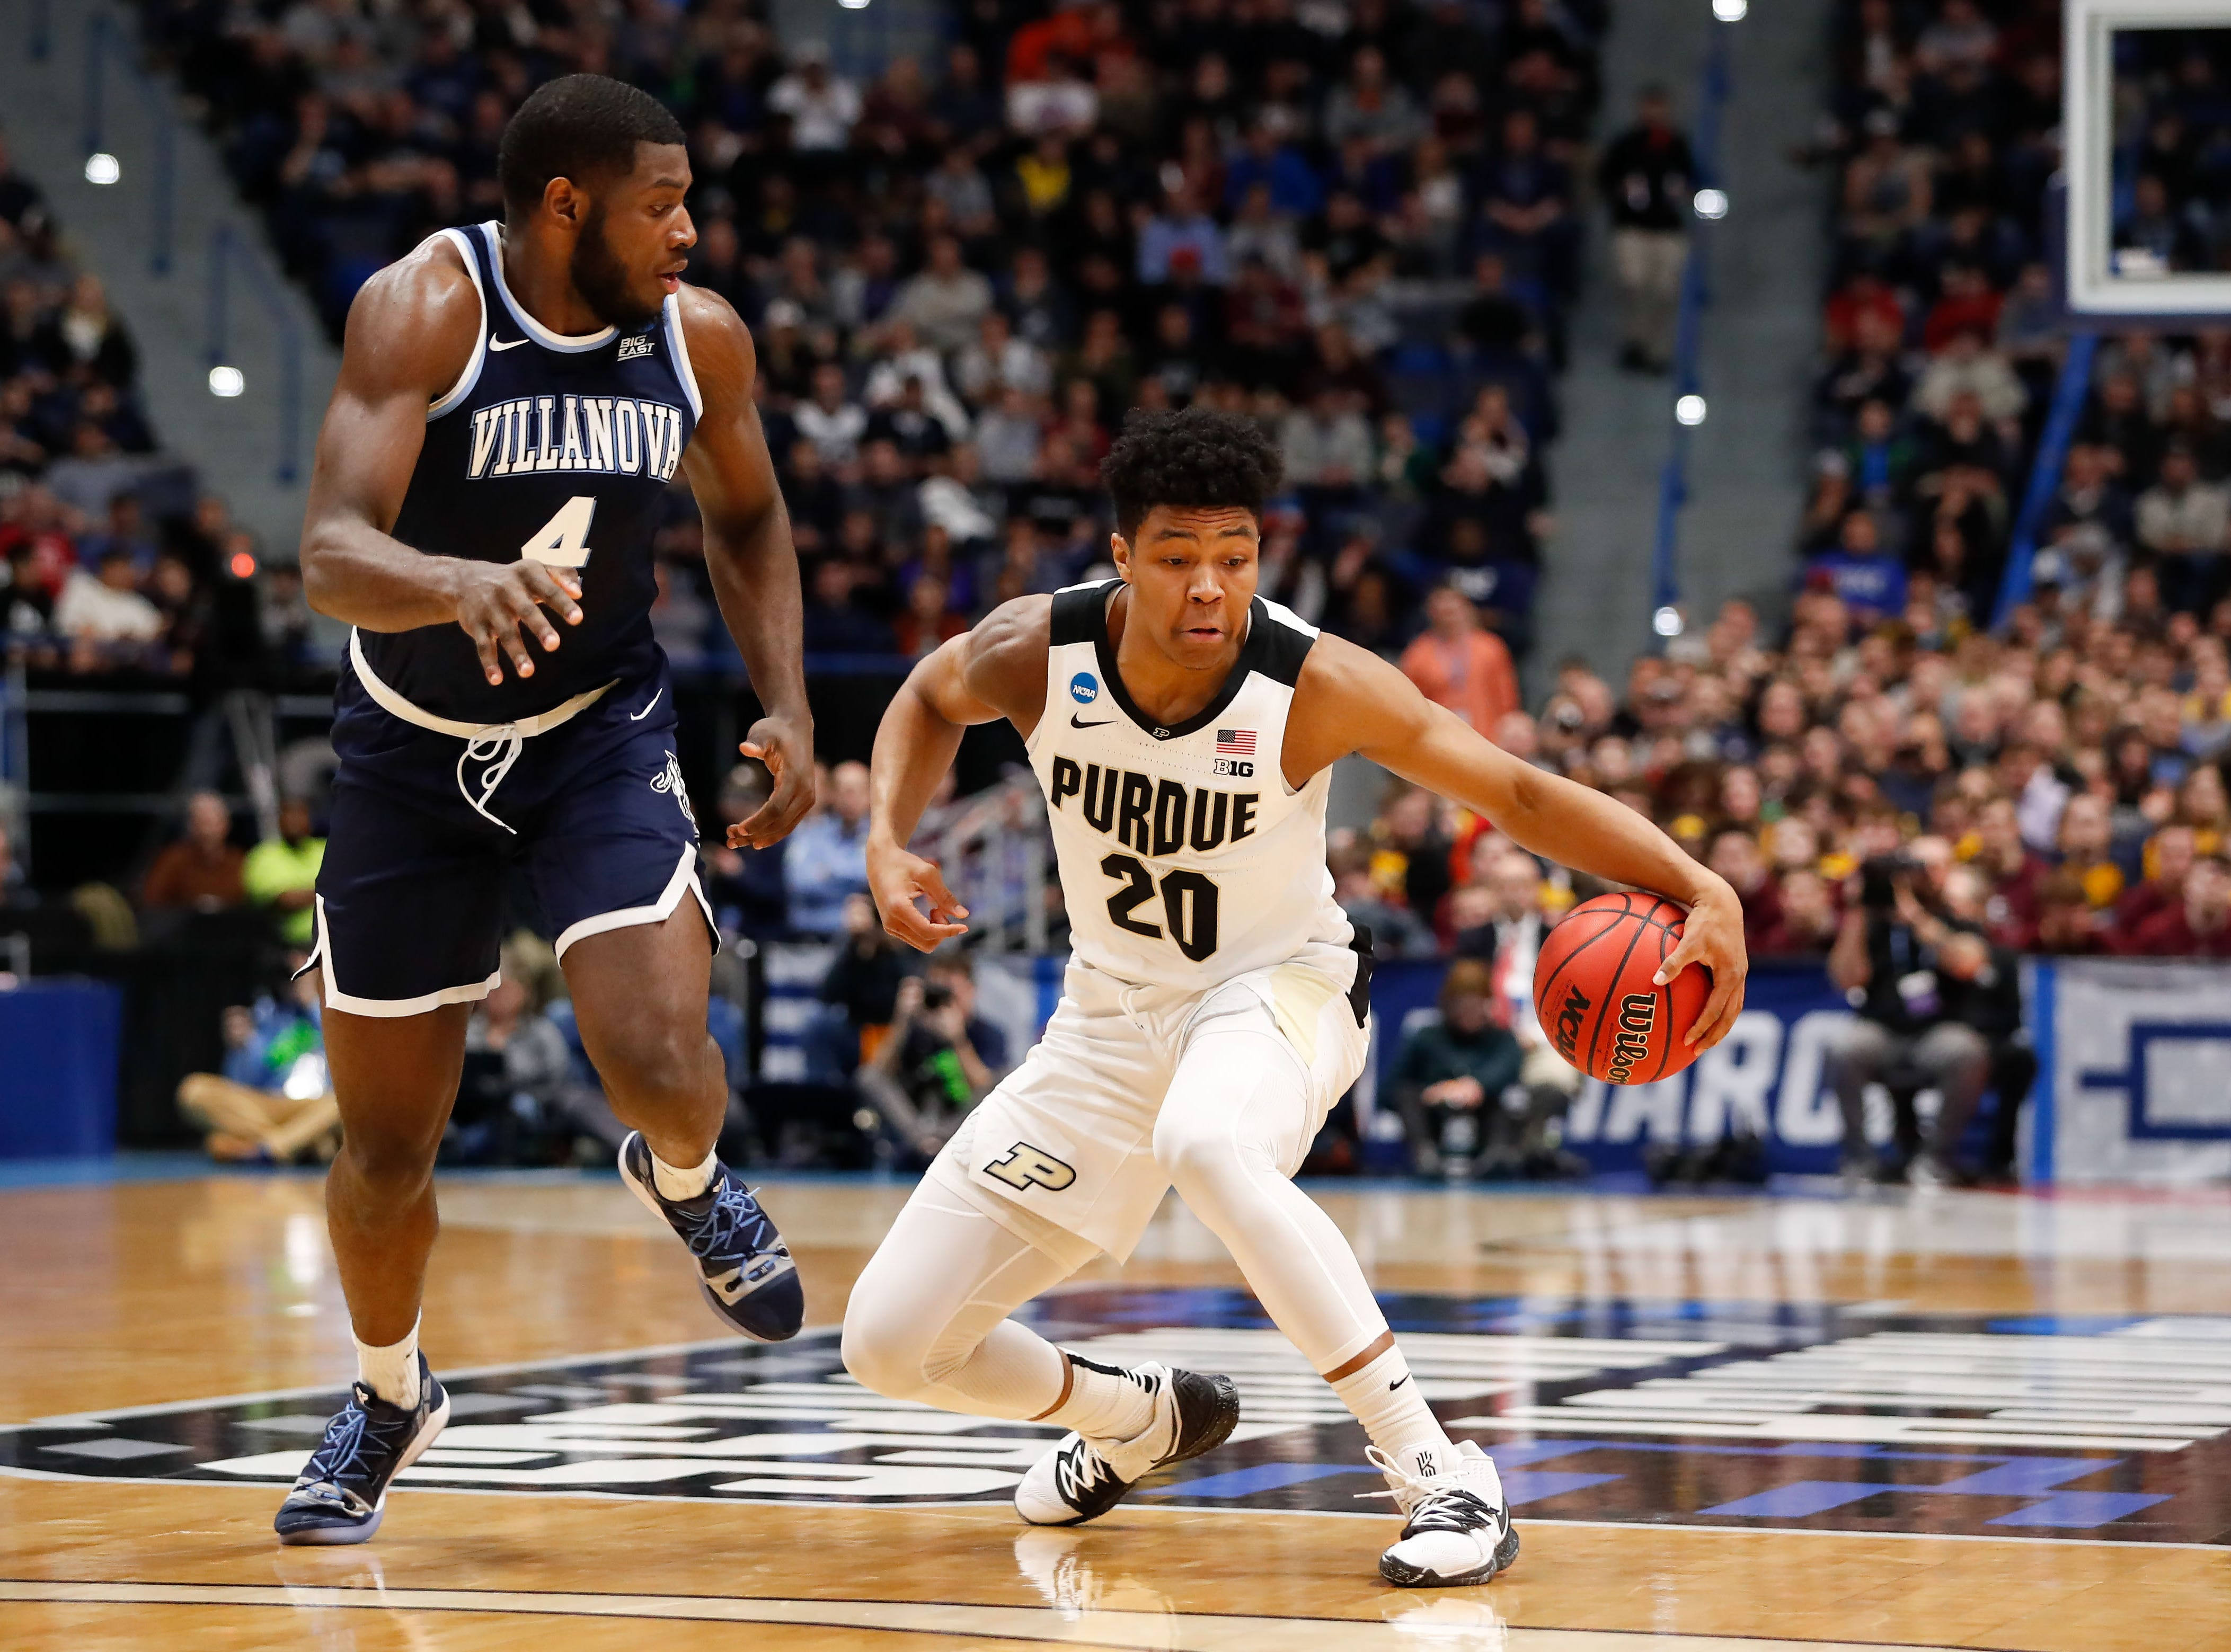 Mar 23, 2019; Hartford, CT, USA;Purdue Boilermakers guard Nojel Eastern (20) controls the ball in front of Villanova Wildcats forward Eric Paschall (4) during the first half of a game in the second round of the 2019 NCAA Tournament at XL Center. Mandatory Credit: David Butler II-USA TODAY Sports